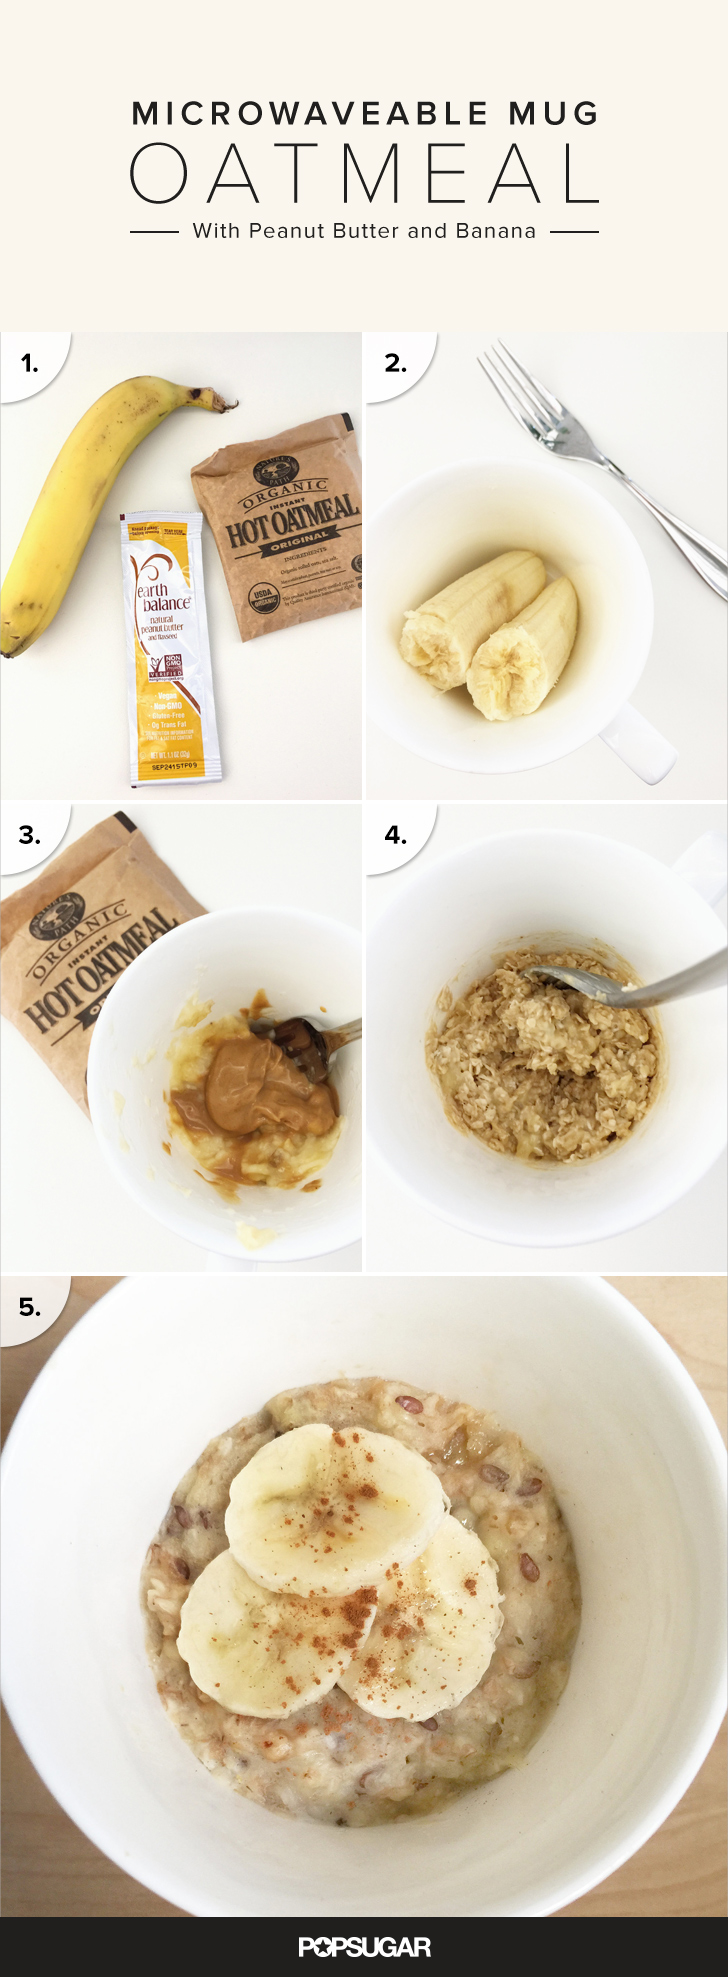 Microwaveable Mug Oatmeal With Peanut Butter And Banana Popsugar Food